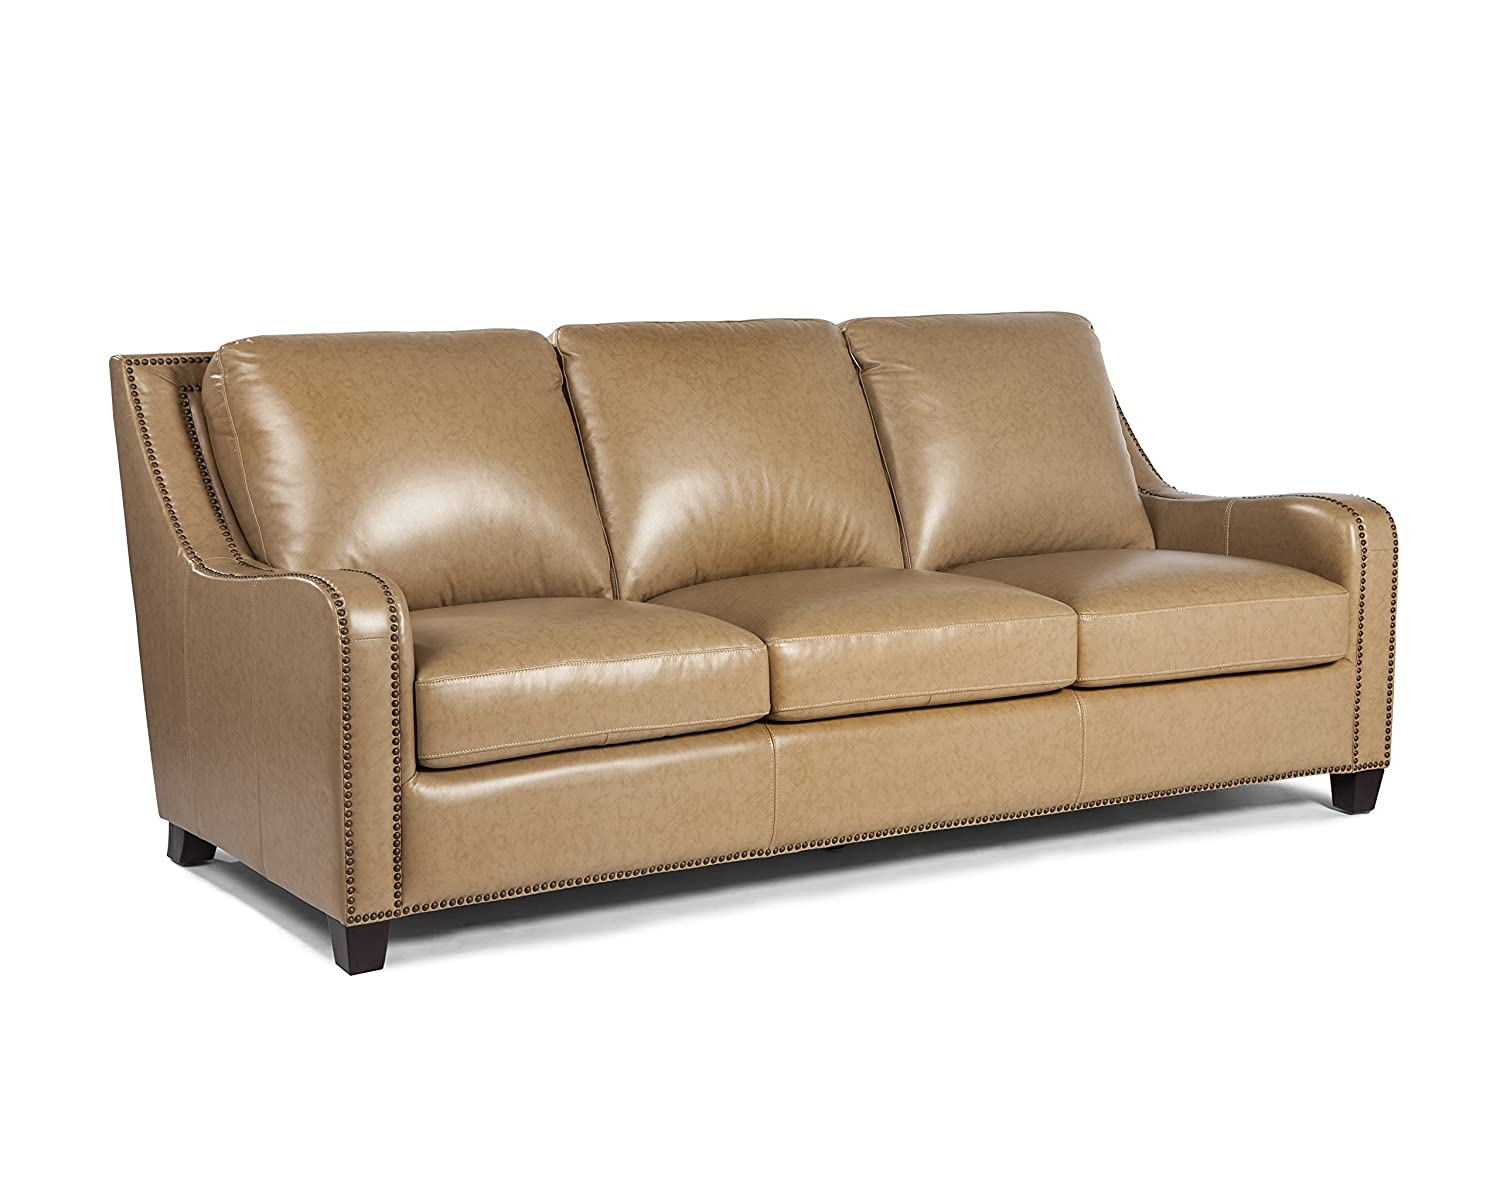 Lazzaro Leather Denver Collection WH-1636N-30-3336 Buckskin ...